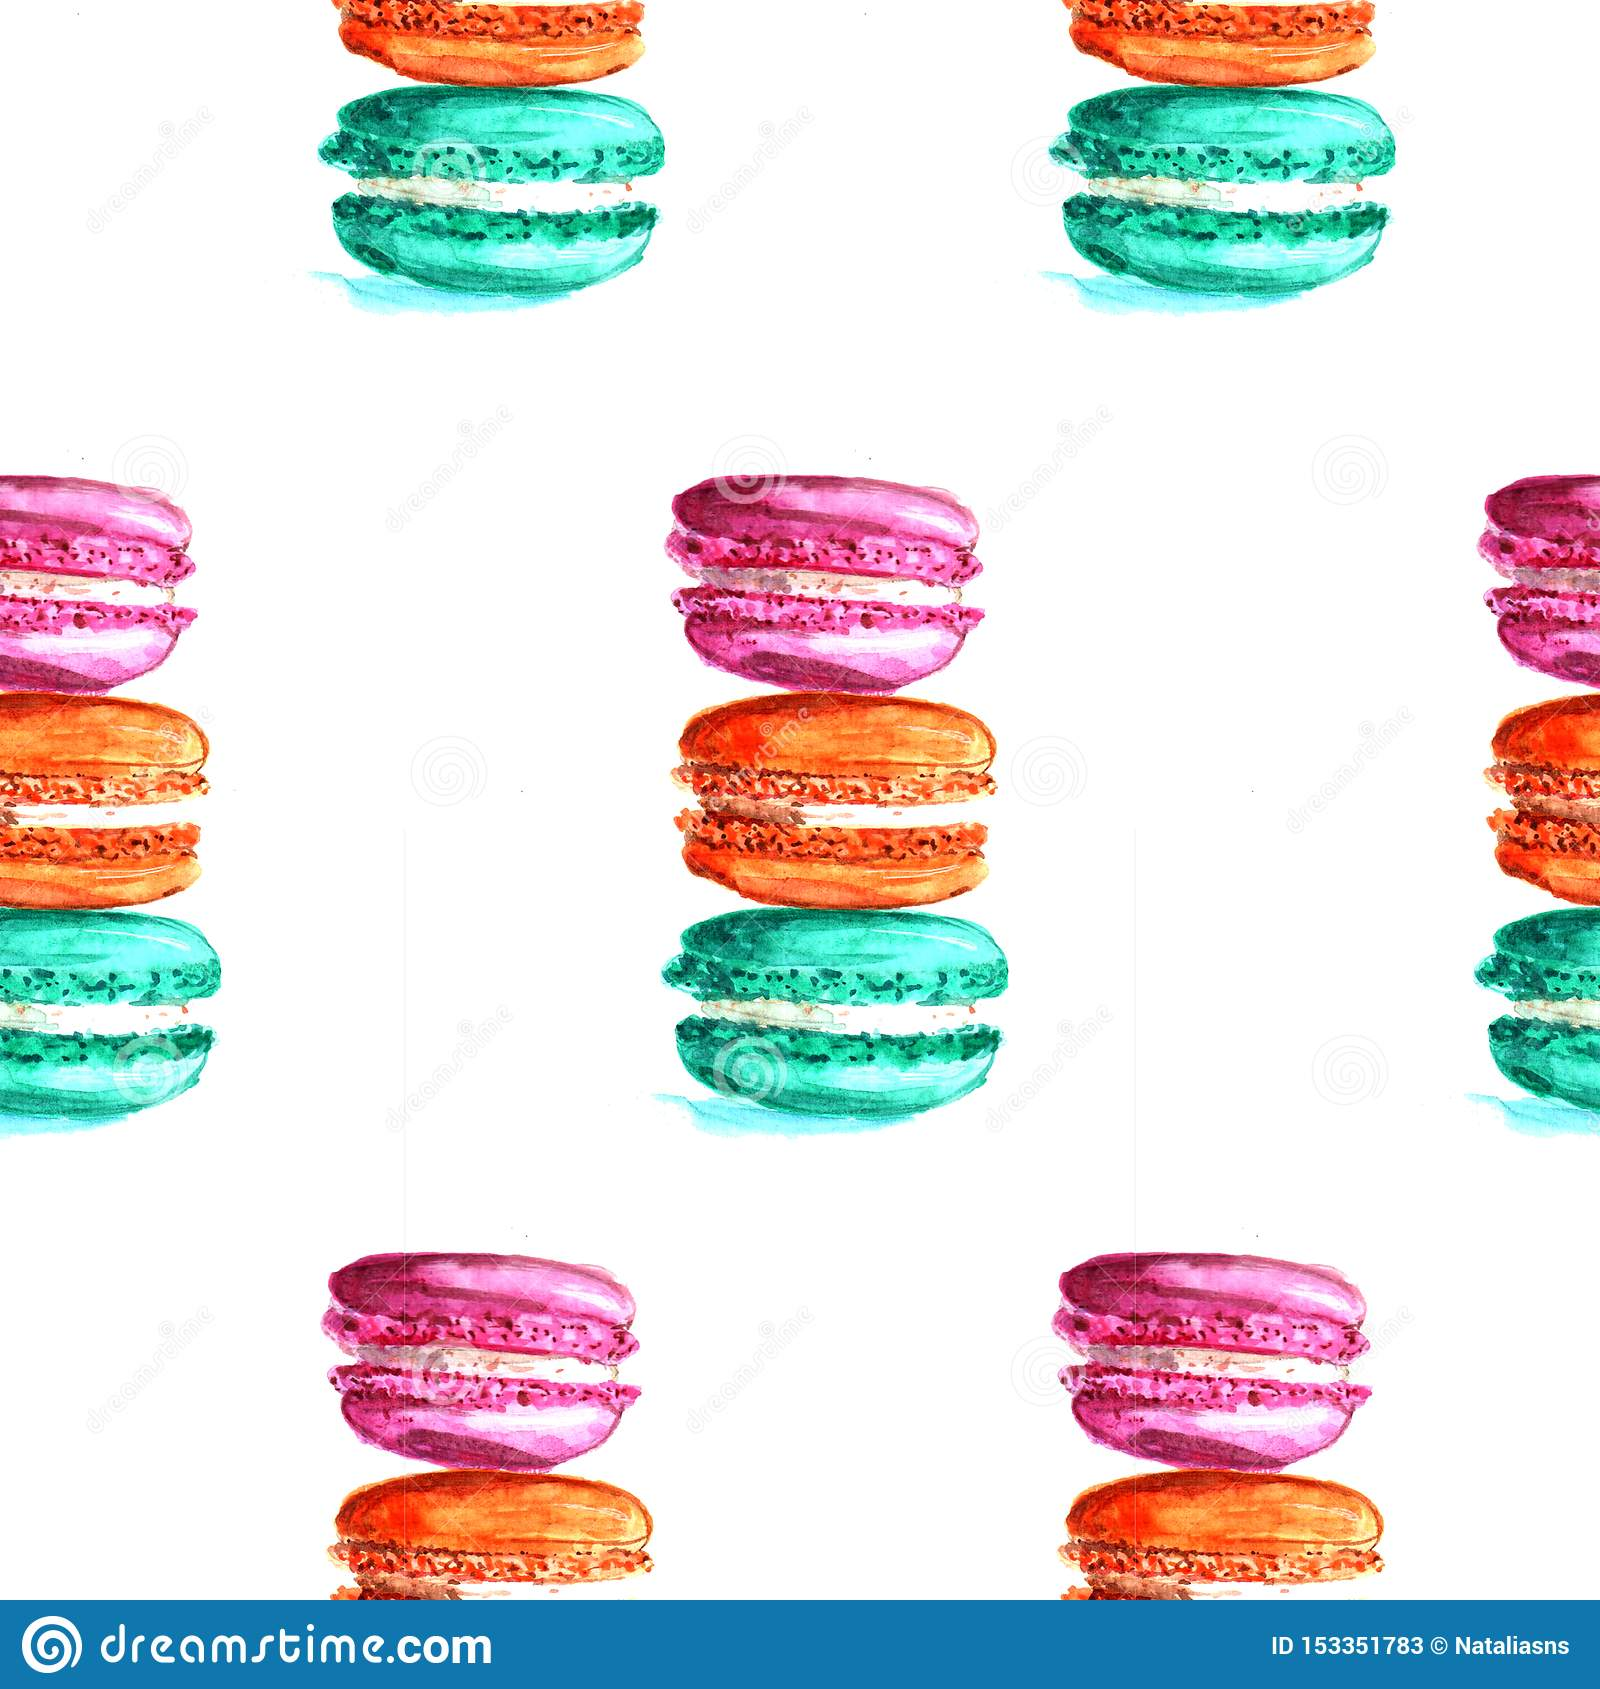 Illustration watercolor pattern macaroons